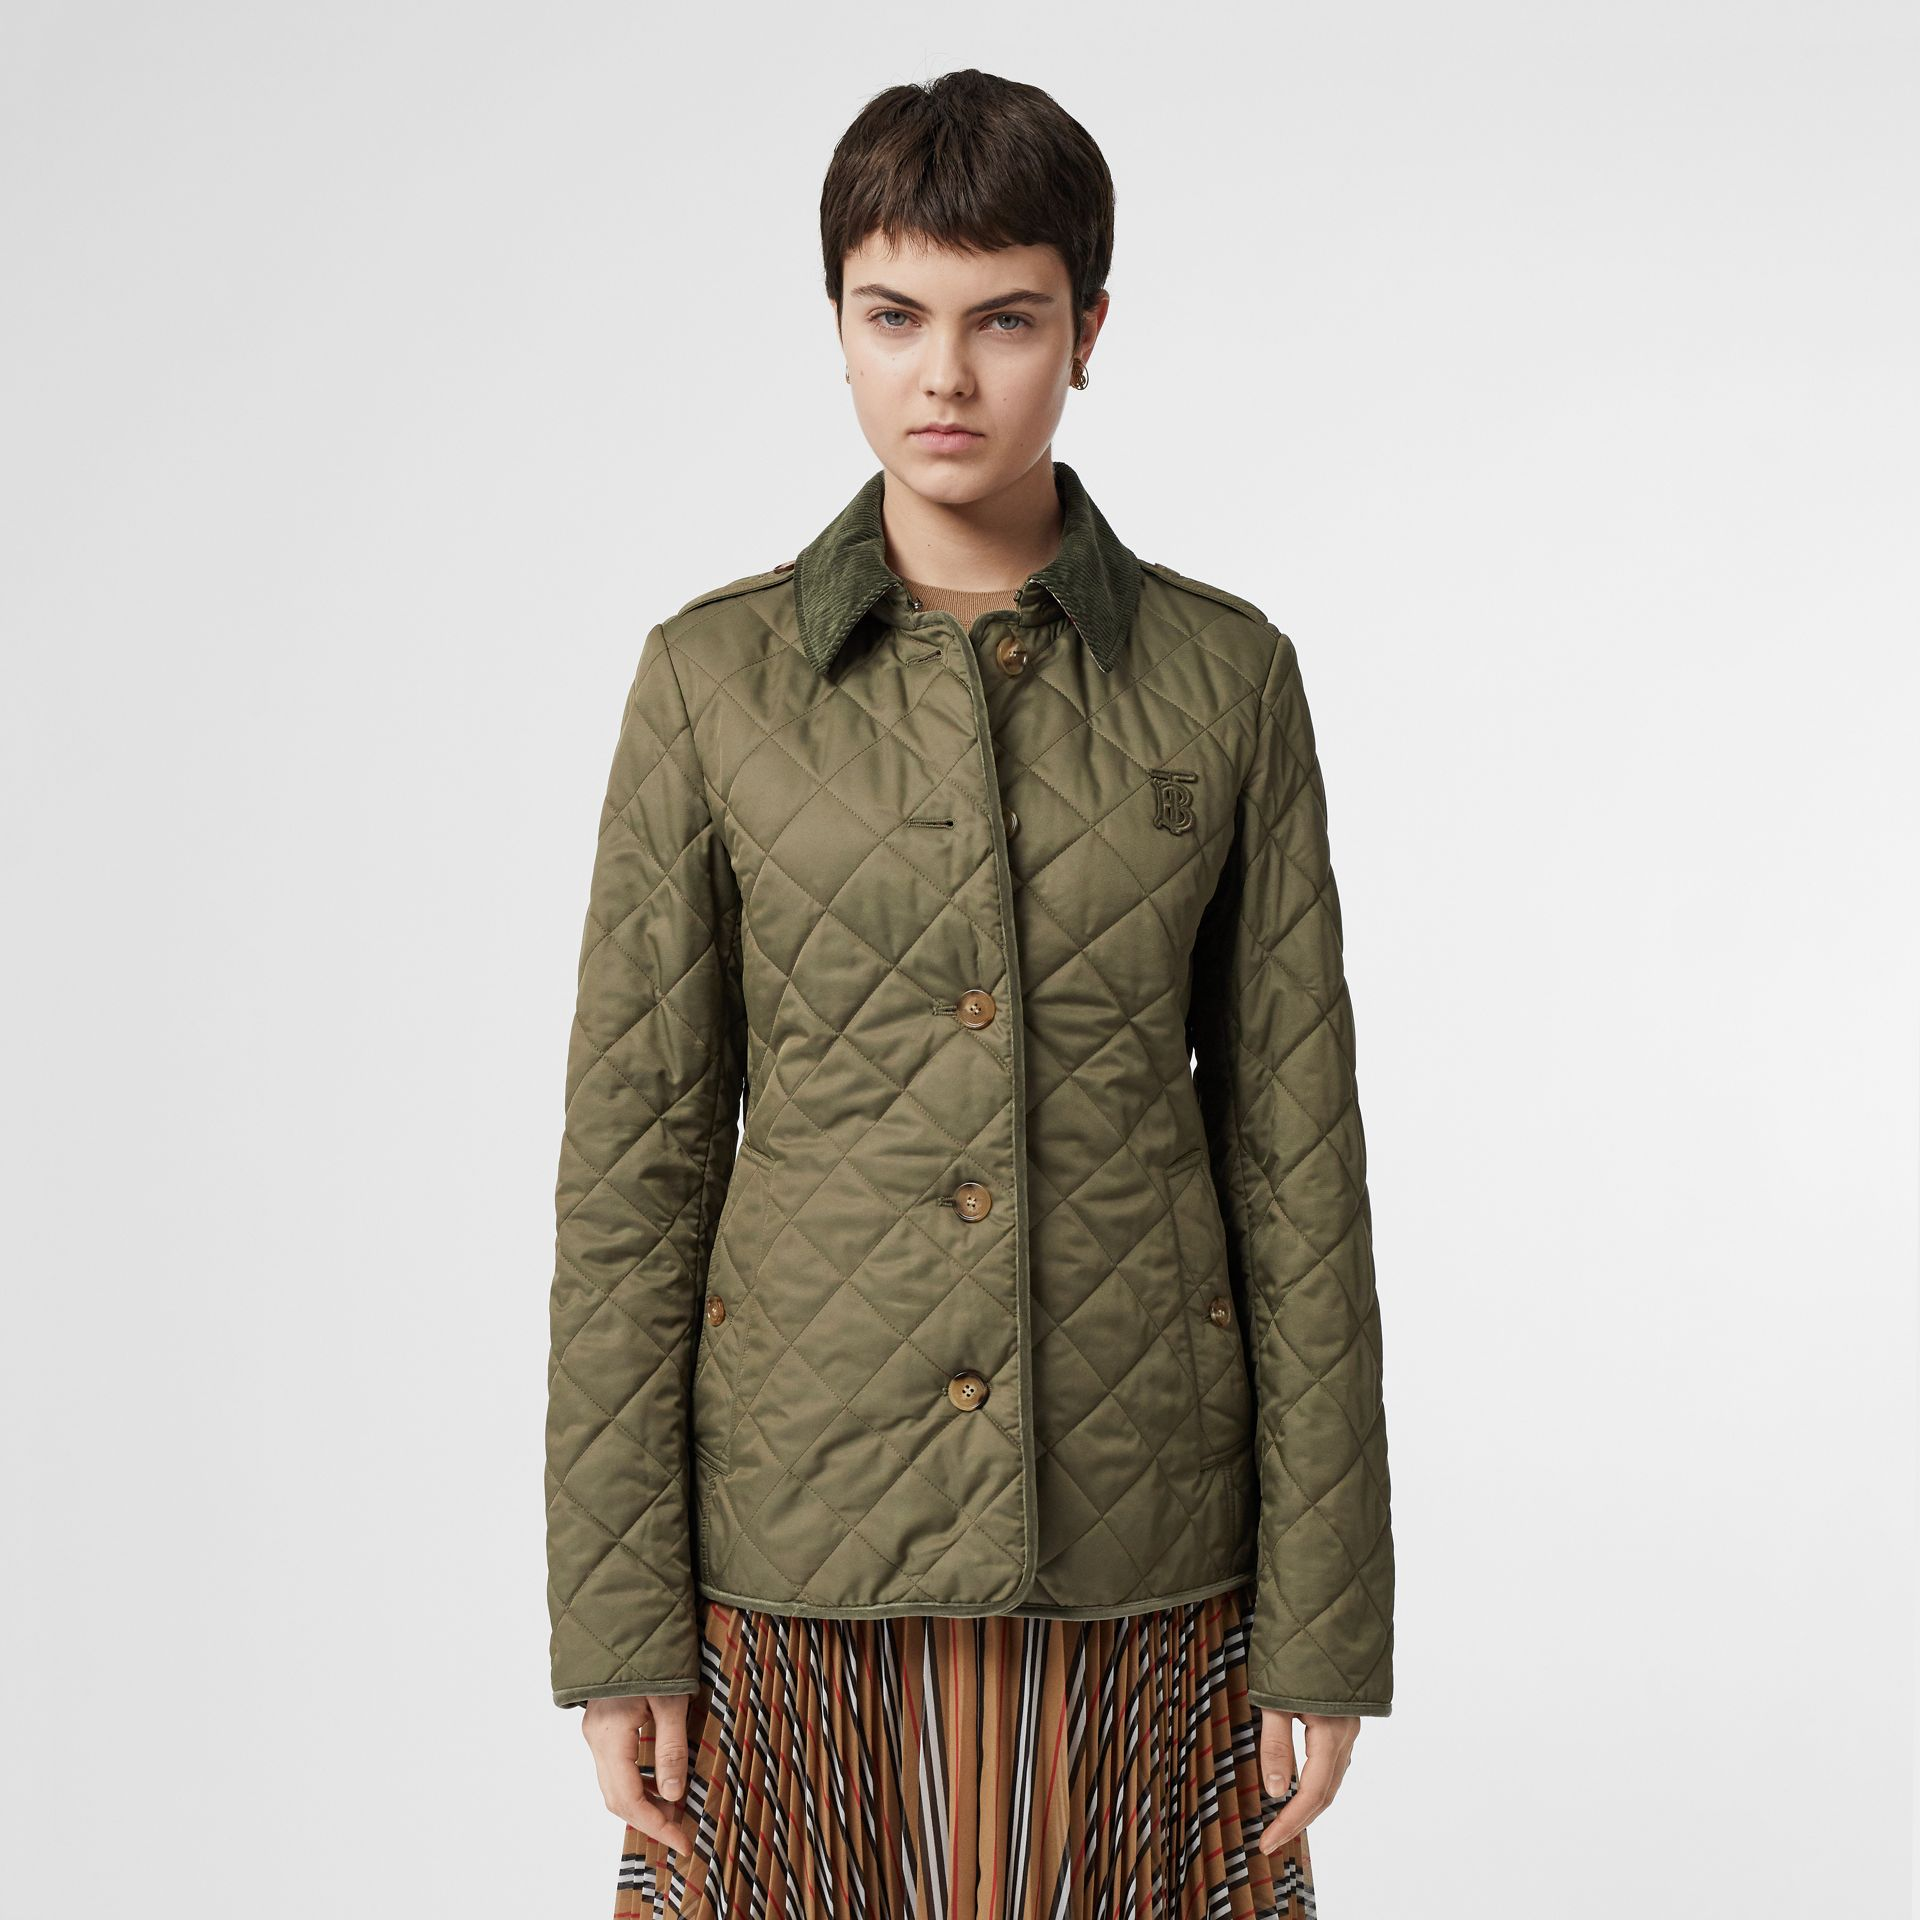 Monogram Motif Diamond Quilted Jacket in Olive Green - Women | Burberry - gallery image 5